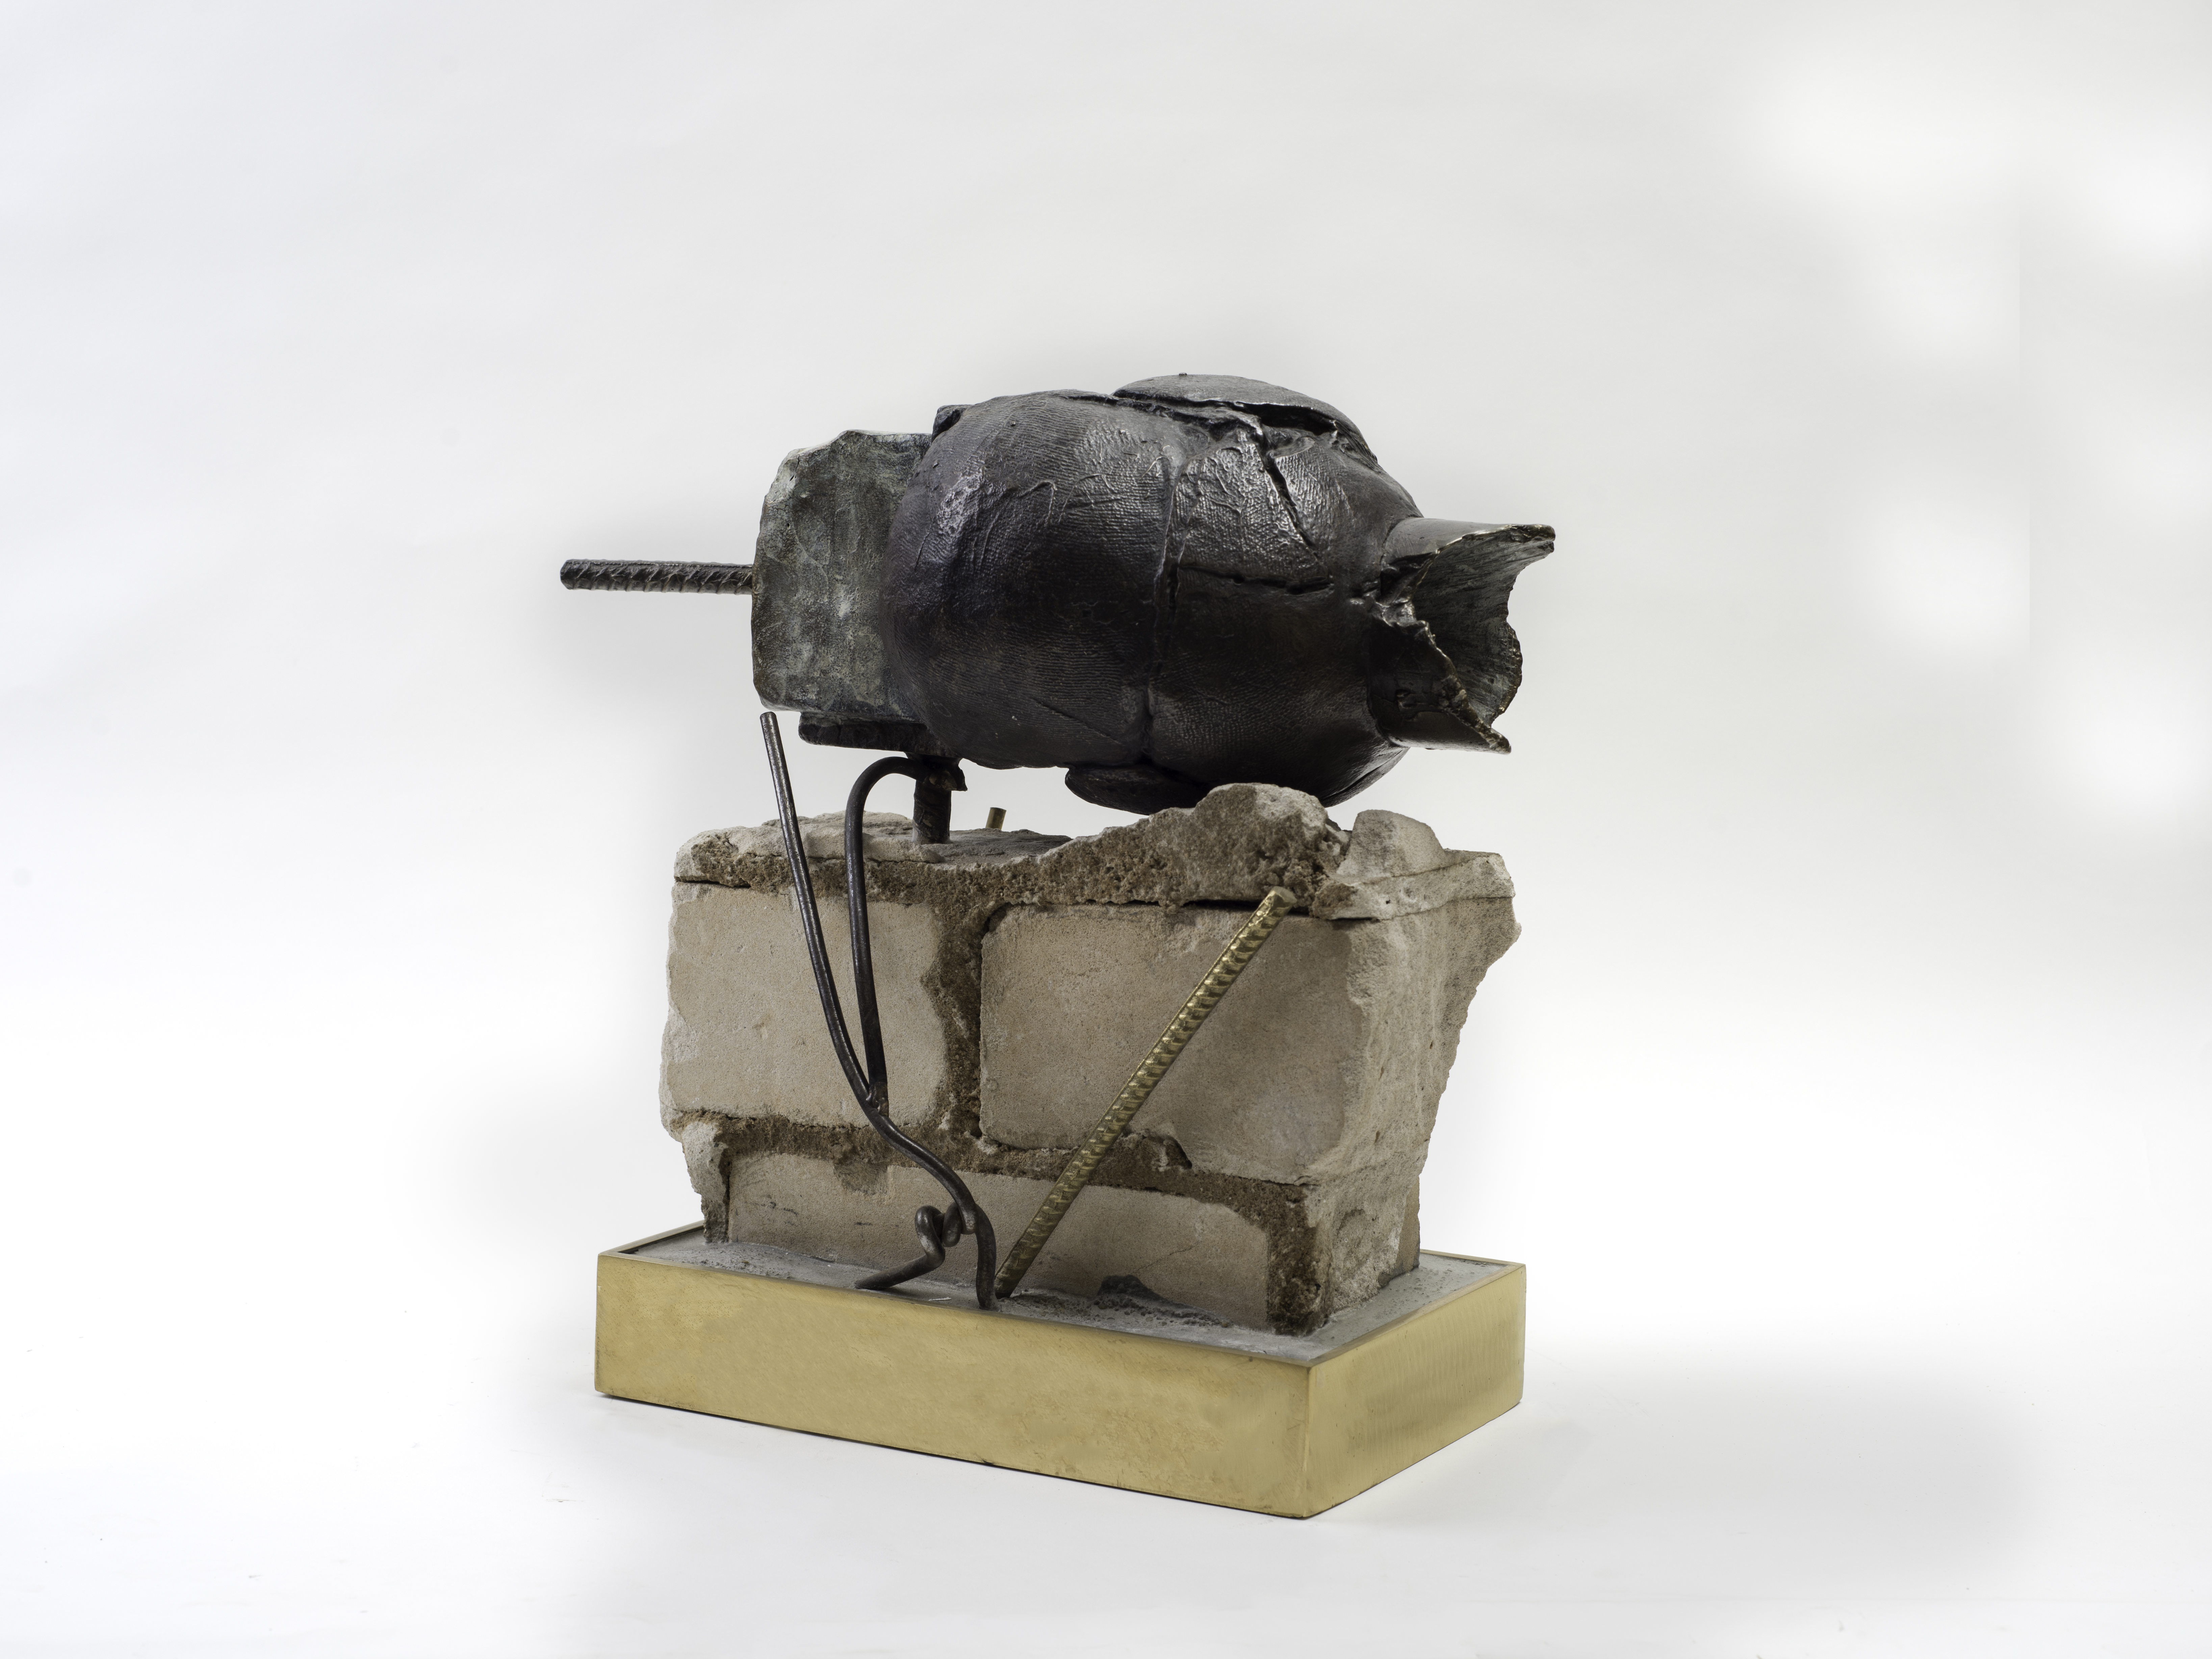 1232_Drora Dominey, Head with Wound, Bronze, iron, concrete and buildings debris, 36x40x17 cm (1)-6550x4912